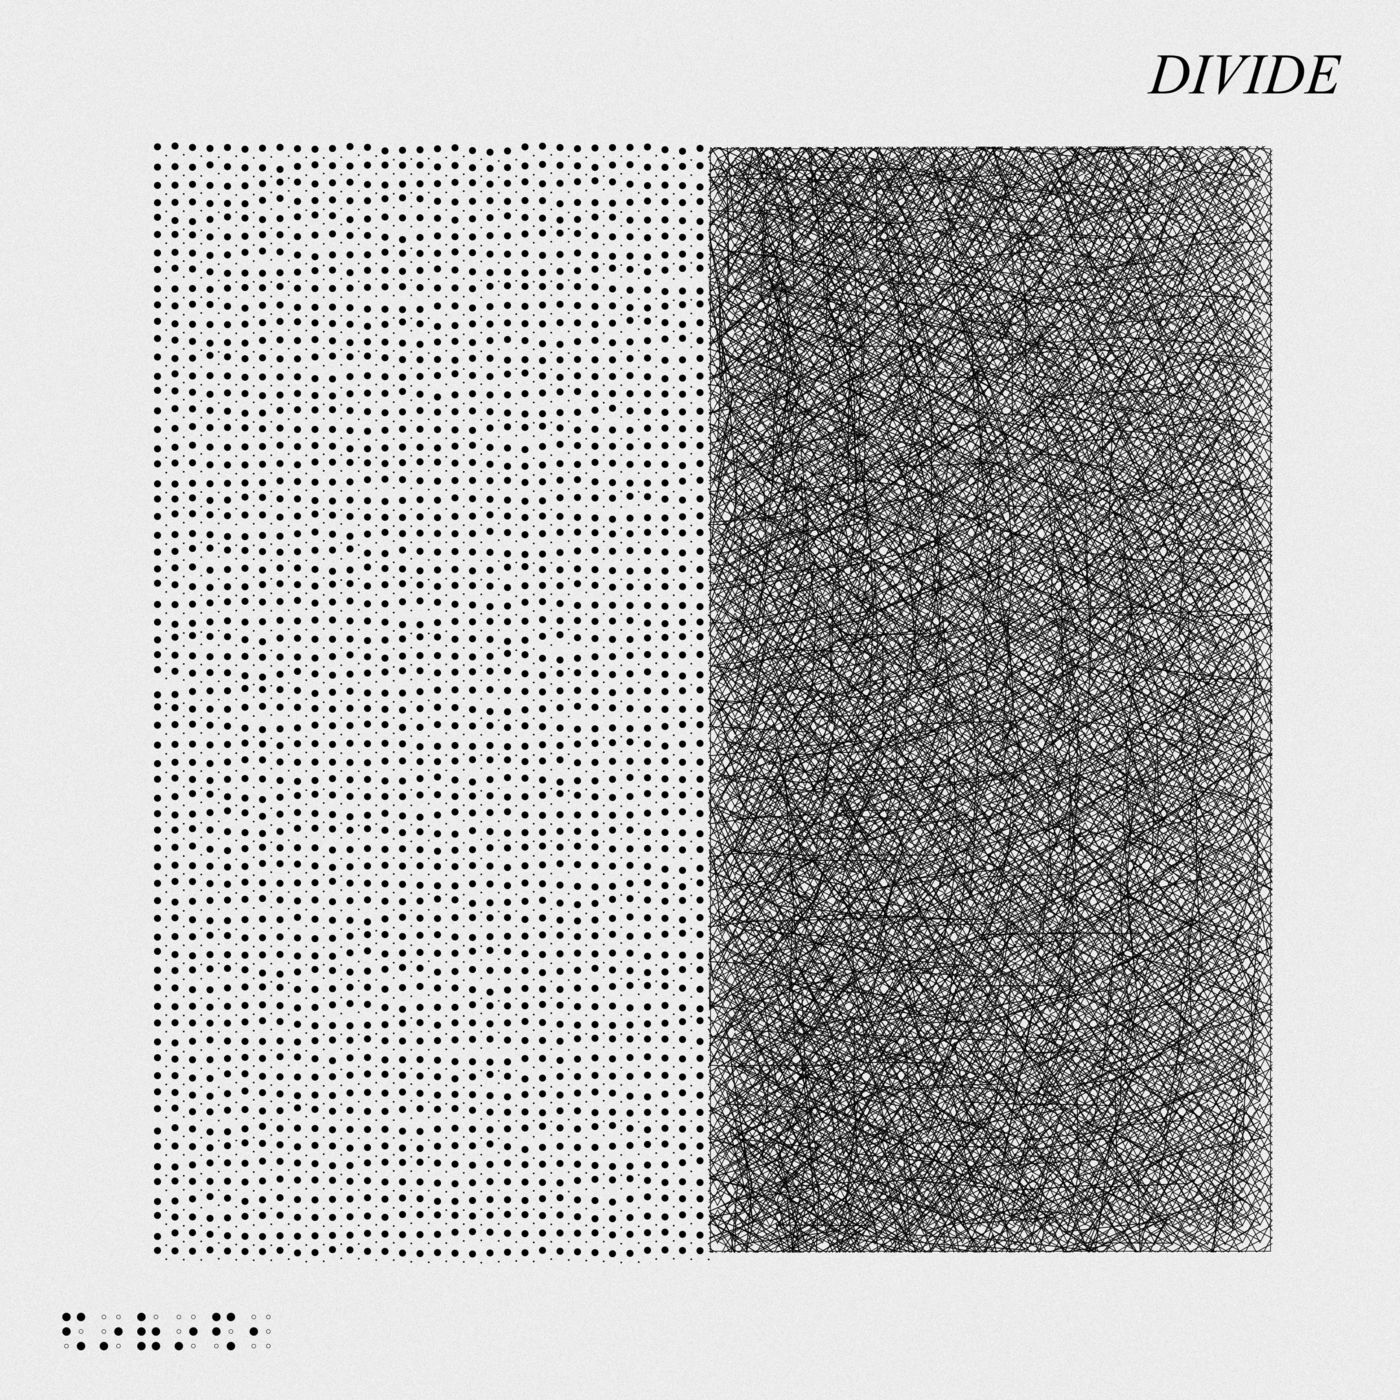 Set for Tomorrow - Divide [single] (2020)